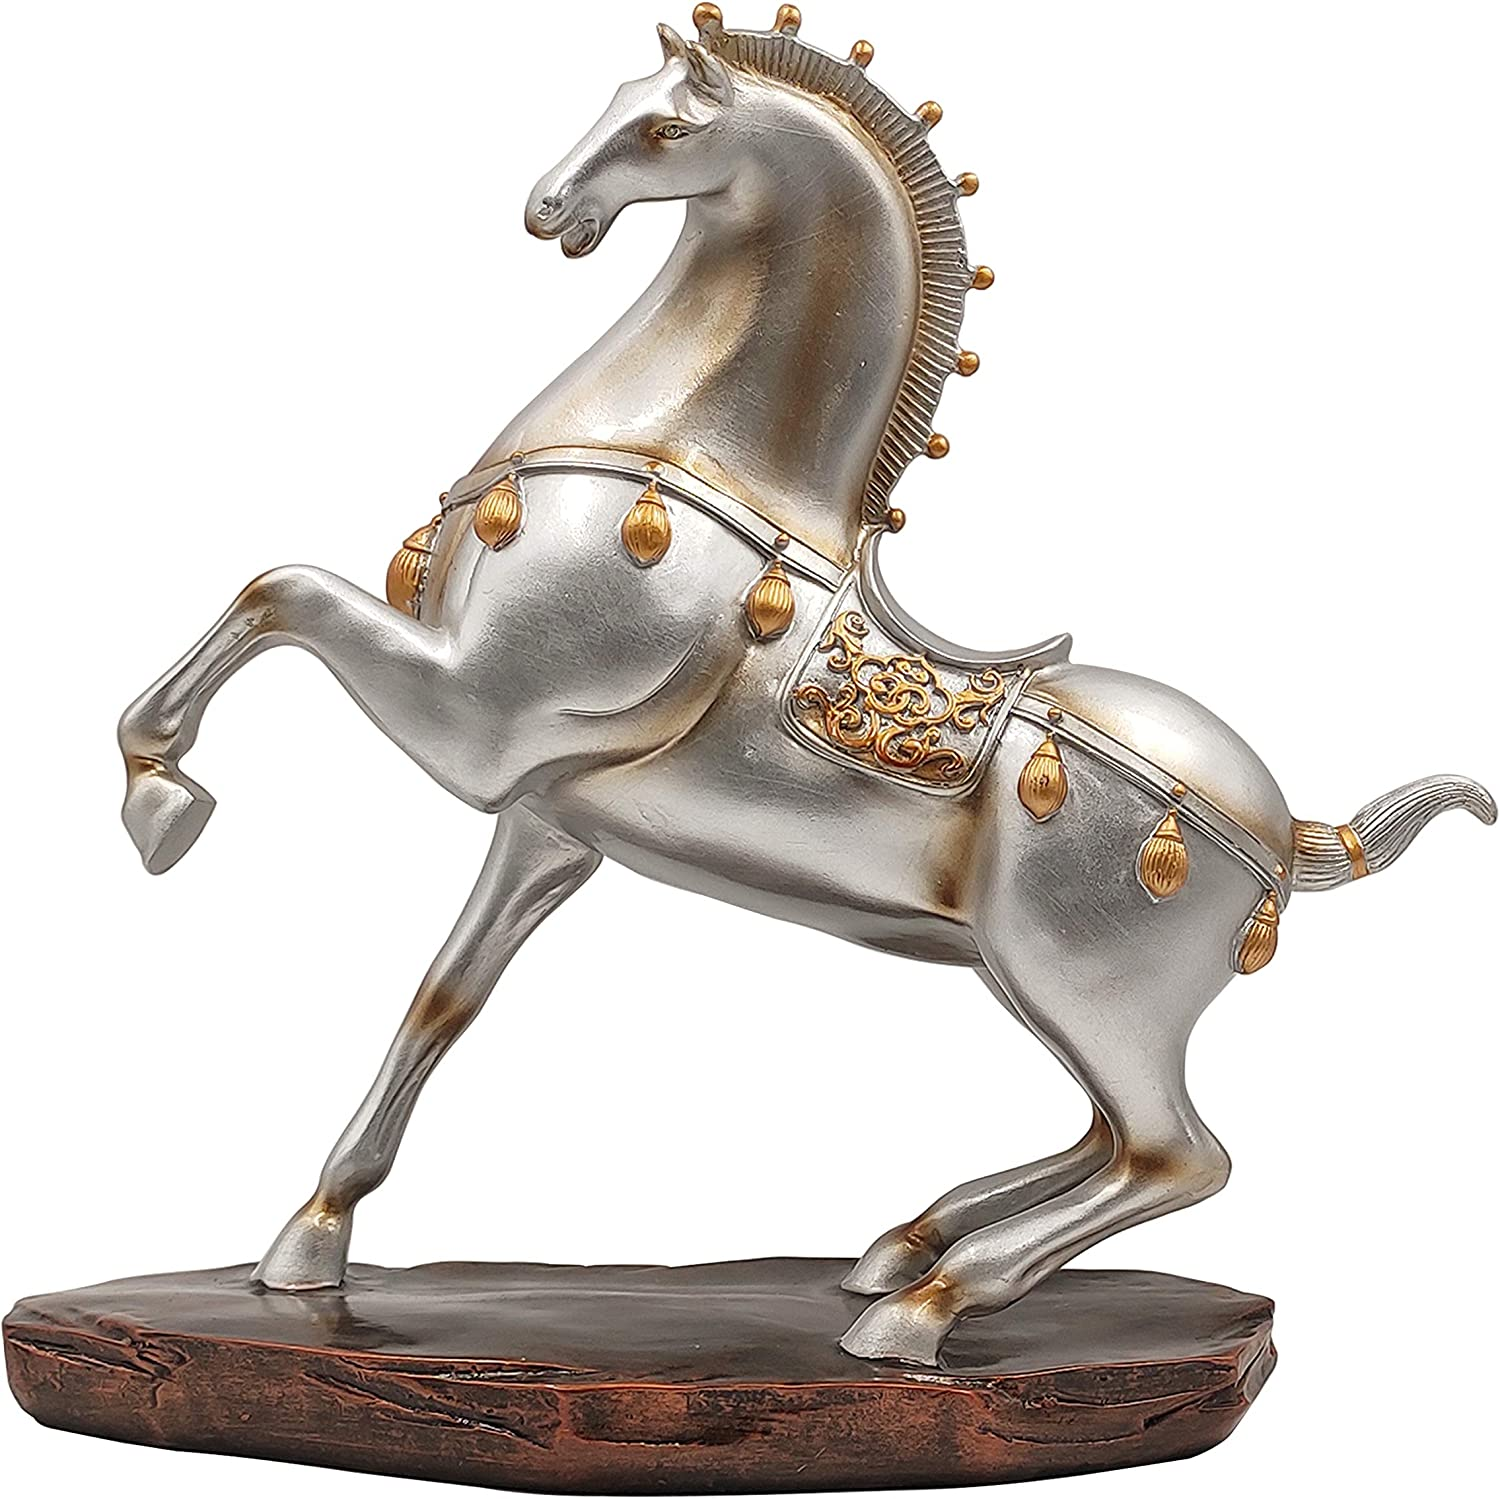 LOOYAR Antique Arabian Horse Resin Statue Sculpture Ornament Figurine Craft  Furnishing for Home Décor Farm House Living Room Porch Decoration Office ...